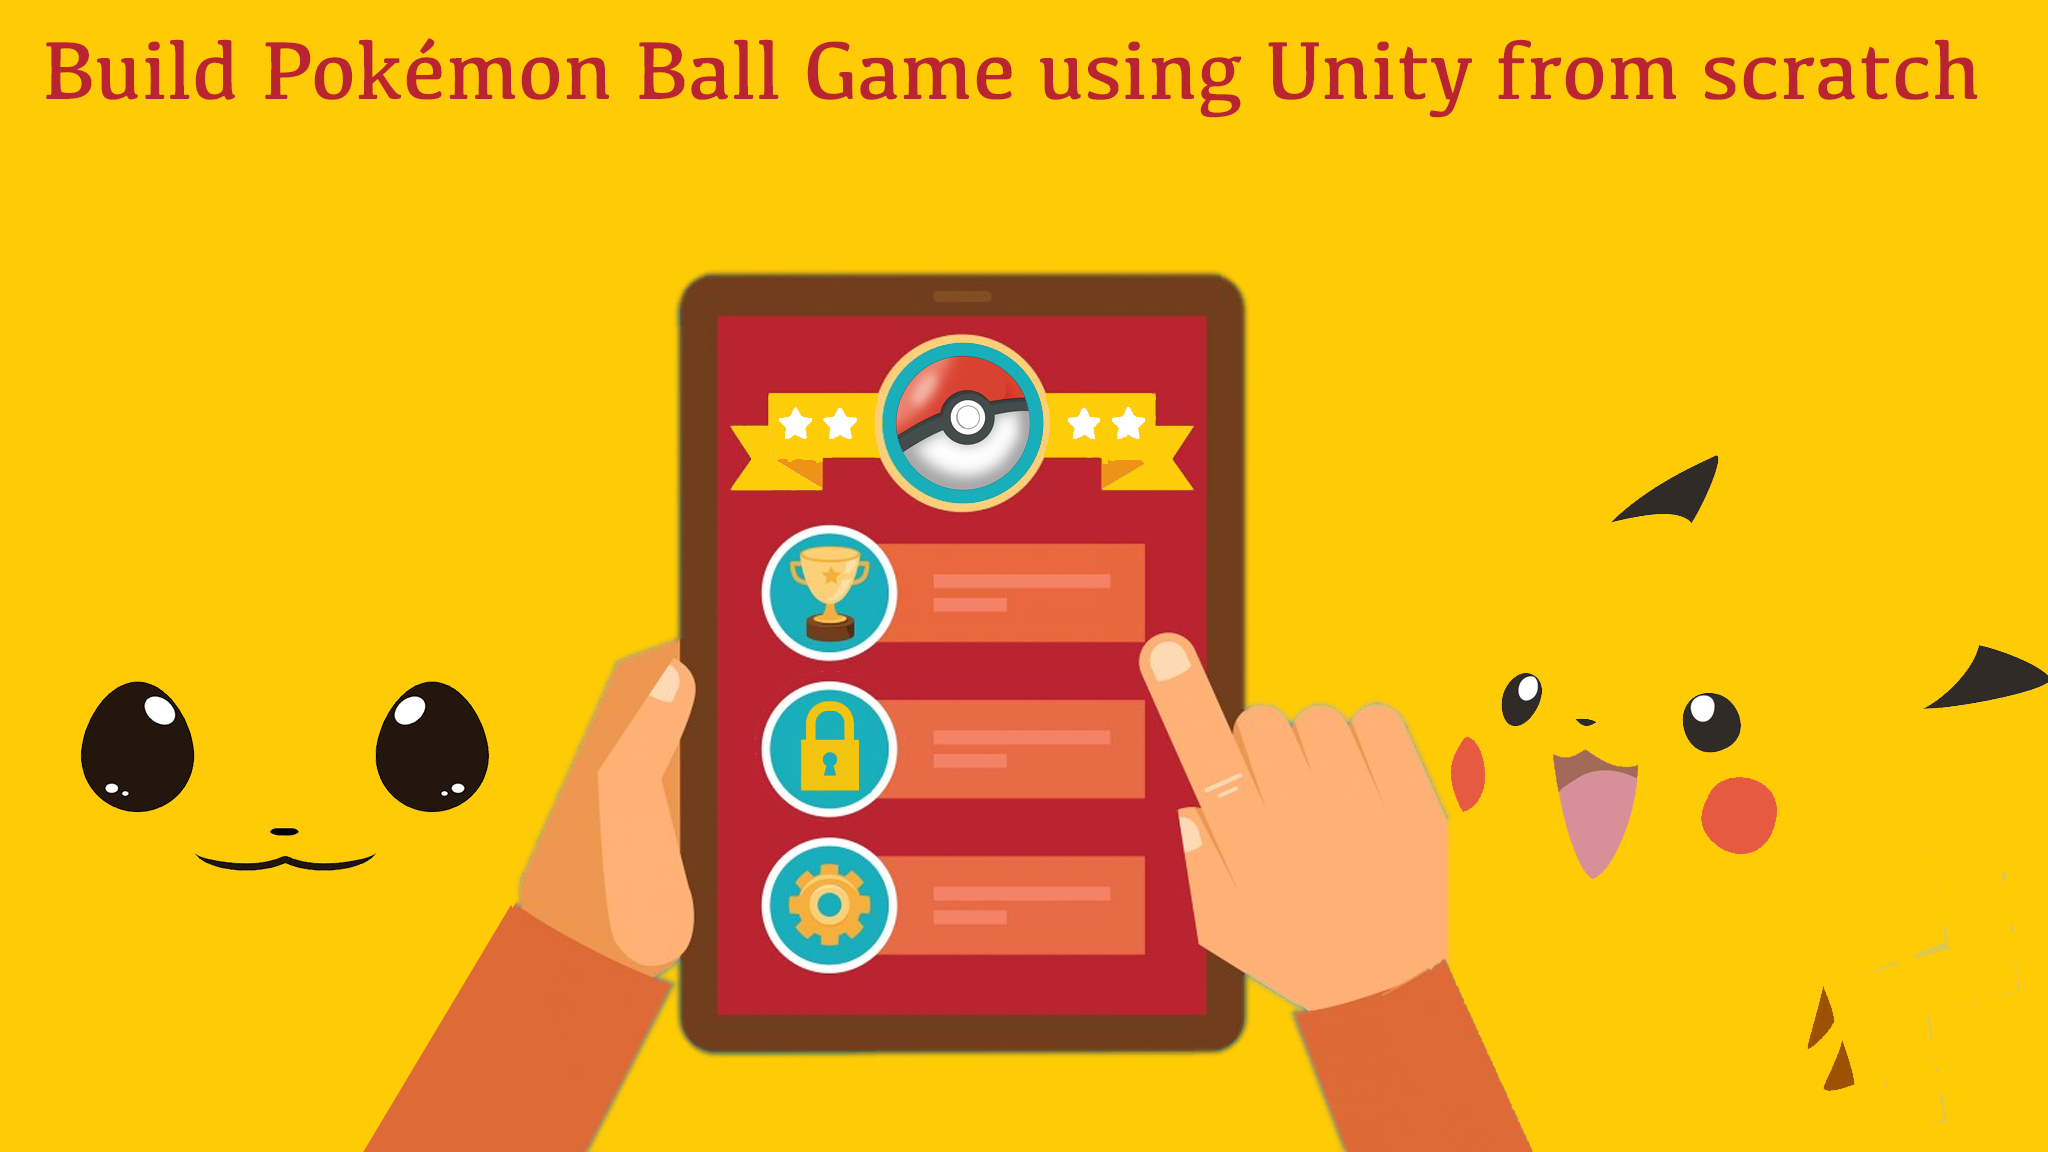 UNITY GAMES LOCK AND UNLOCK SYSTEM COURSE- BUILD POKÉMON BALL GAME